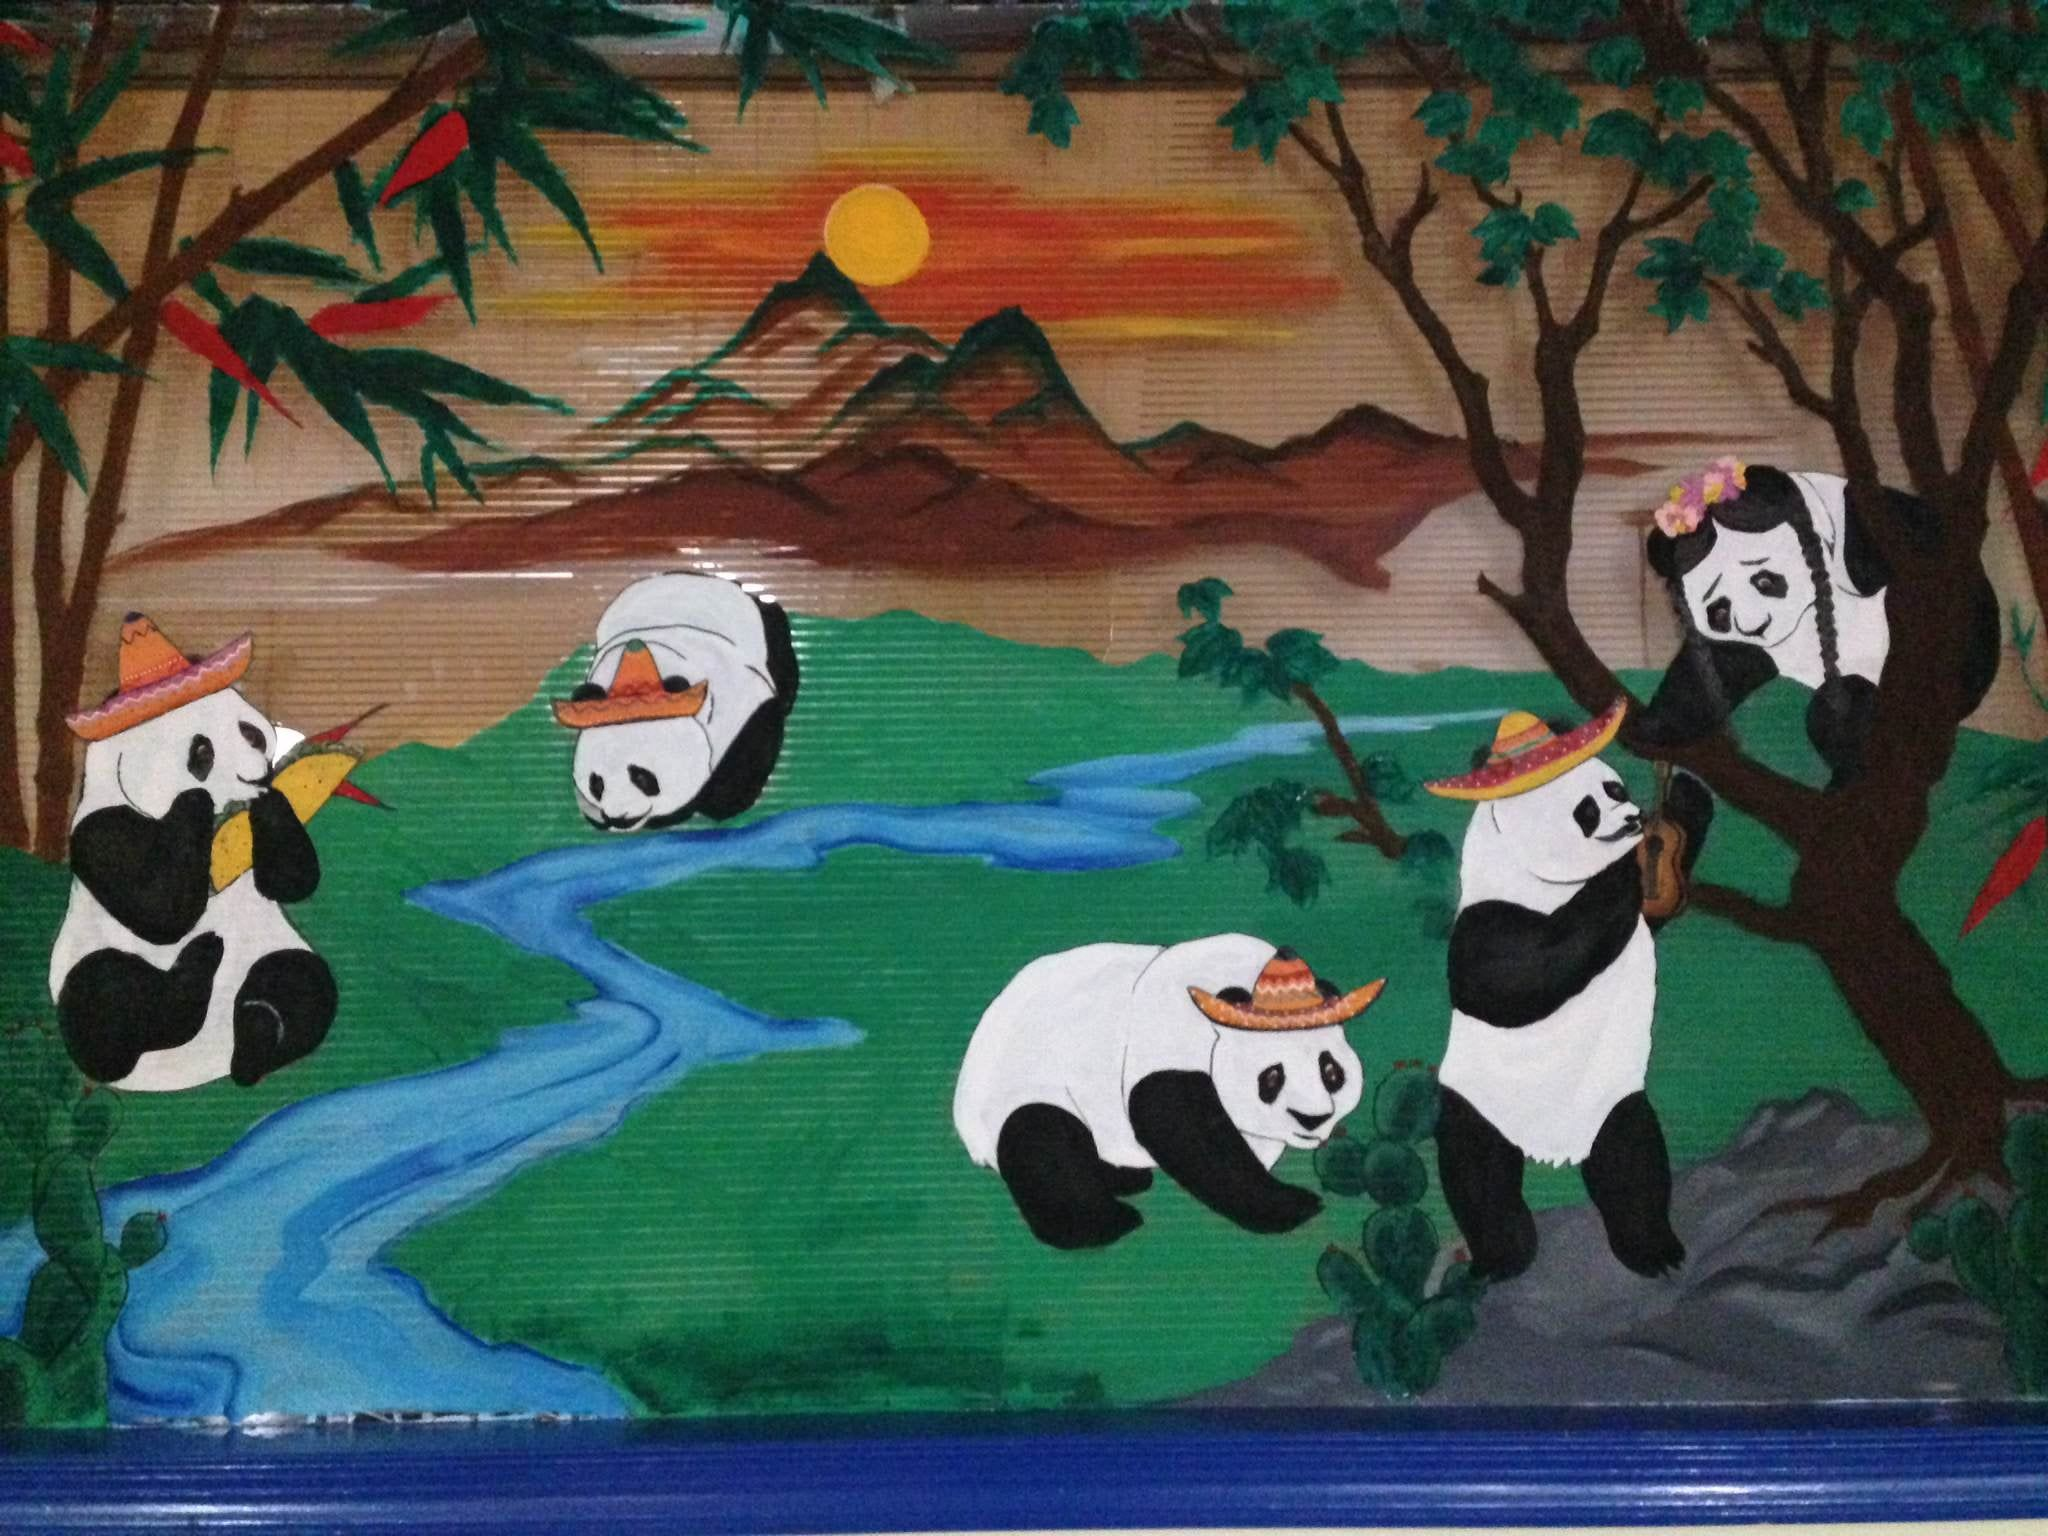 This Mexican restaurant used to be a Chinese restaurant. I love how they just painted sombreros onto the pandas!